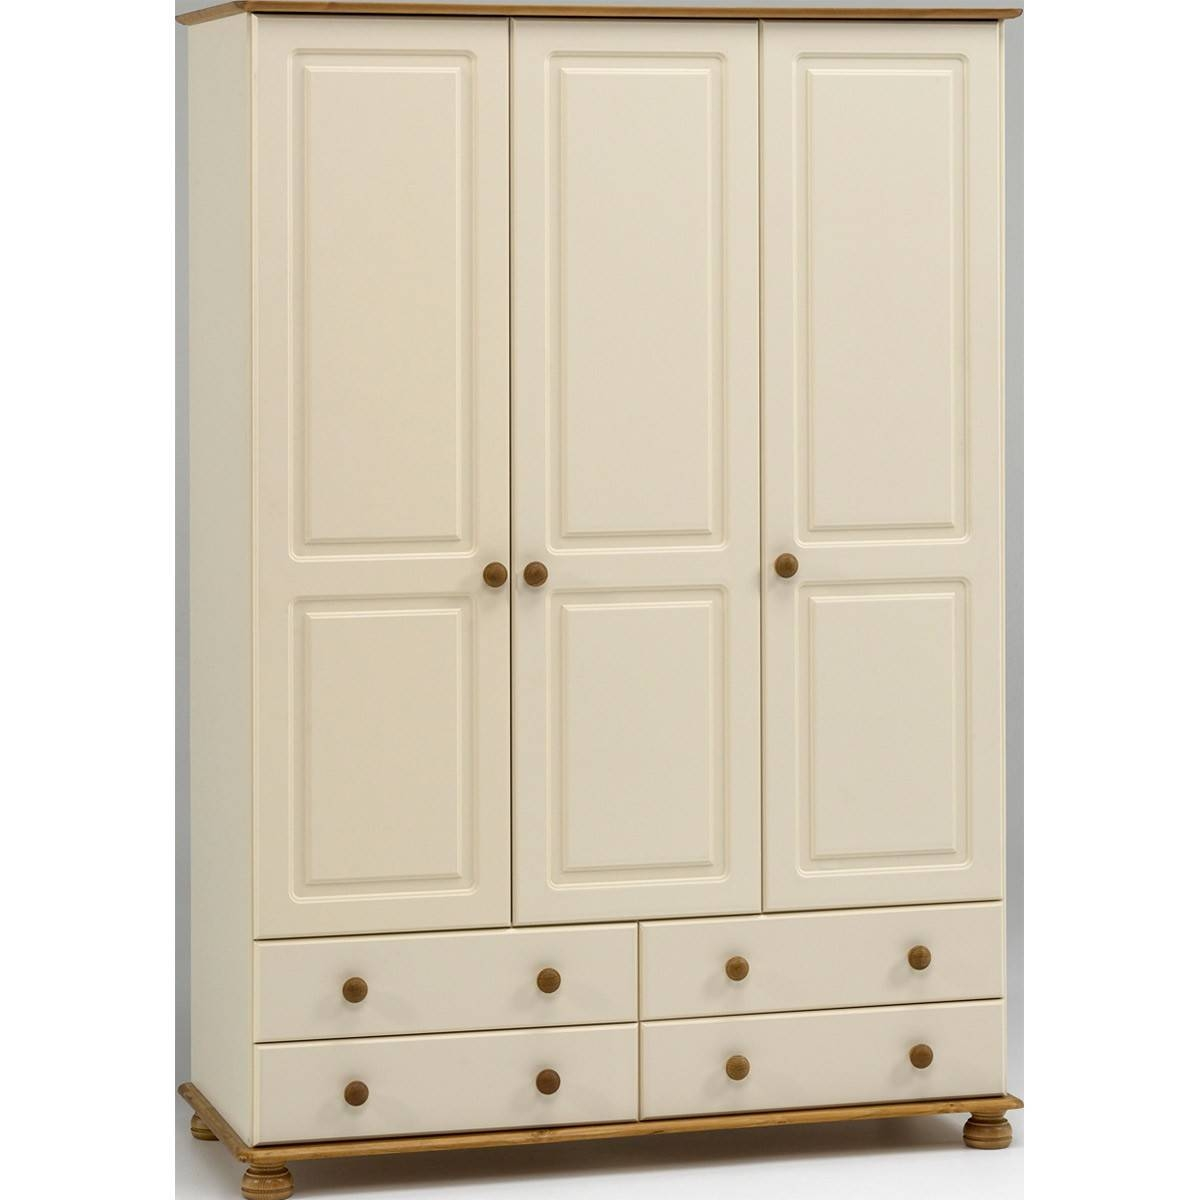 Salisbury Cream And Pine 3 Door 4 Drawer Wardrobe From The for White 3 Door Wardrobes With Drawers (Image 9 of 15)